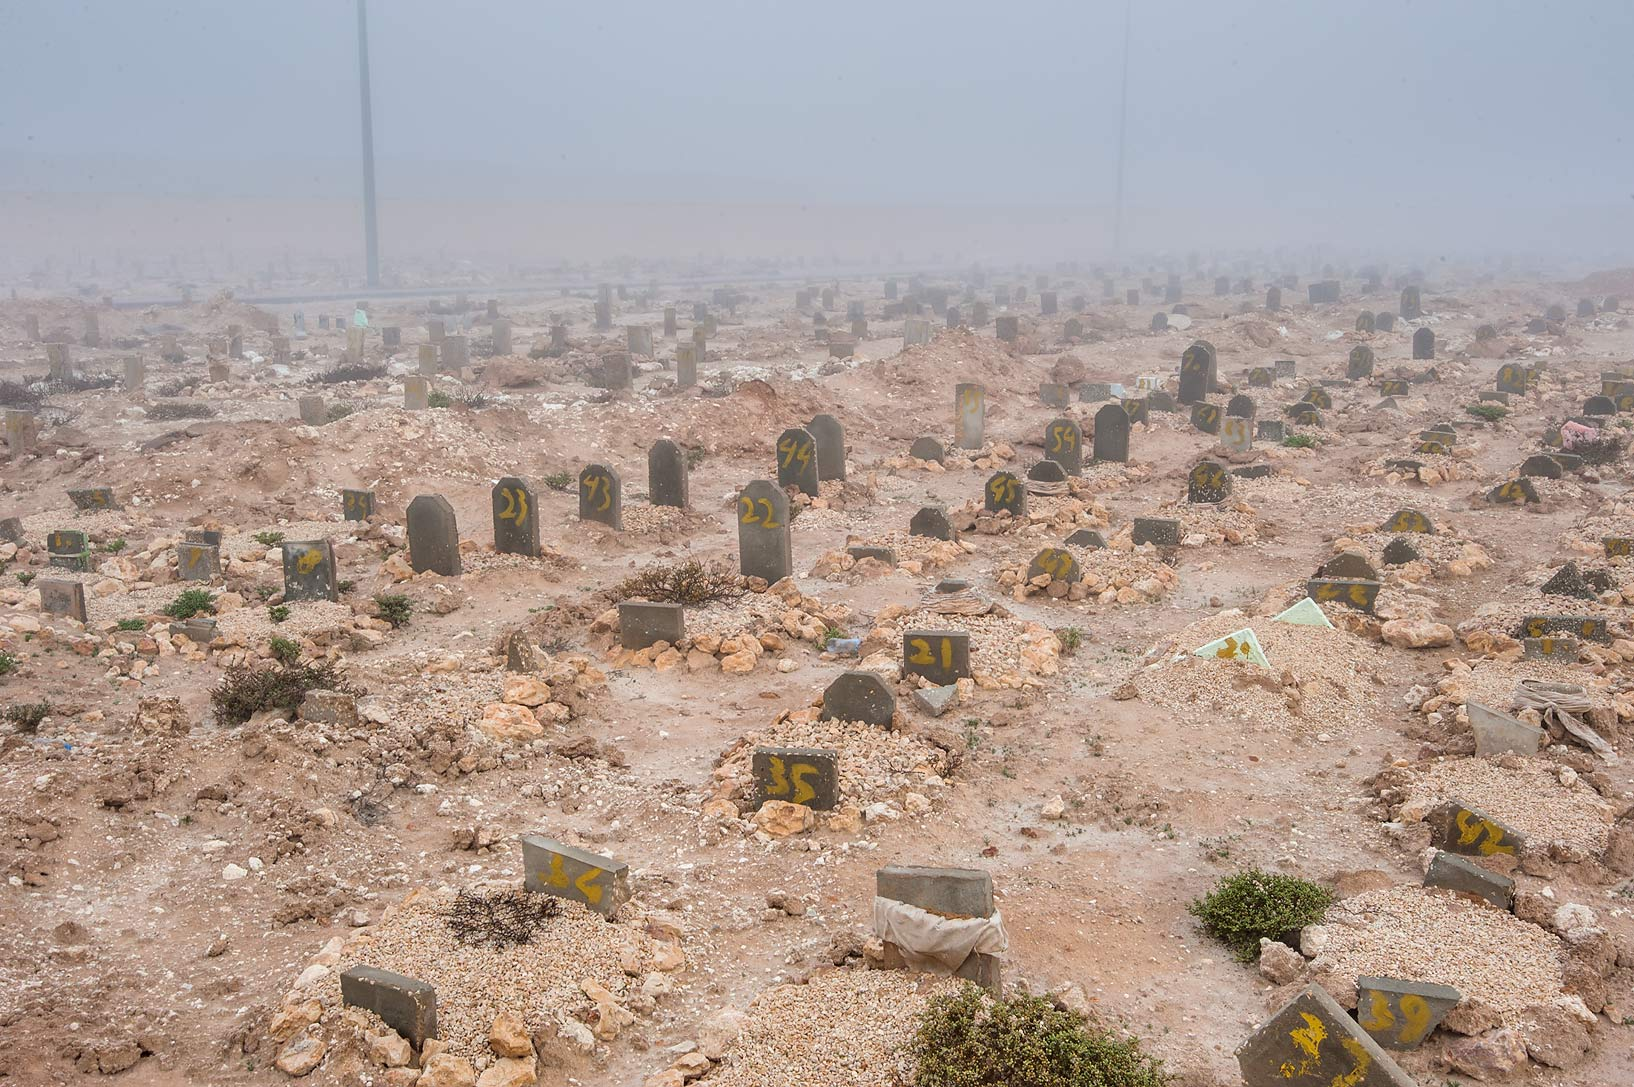 Tomb field in Al Khor Cemetery. North from Al Khor, Qatar